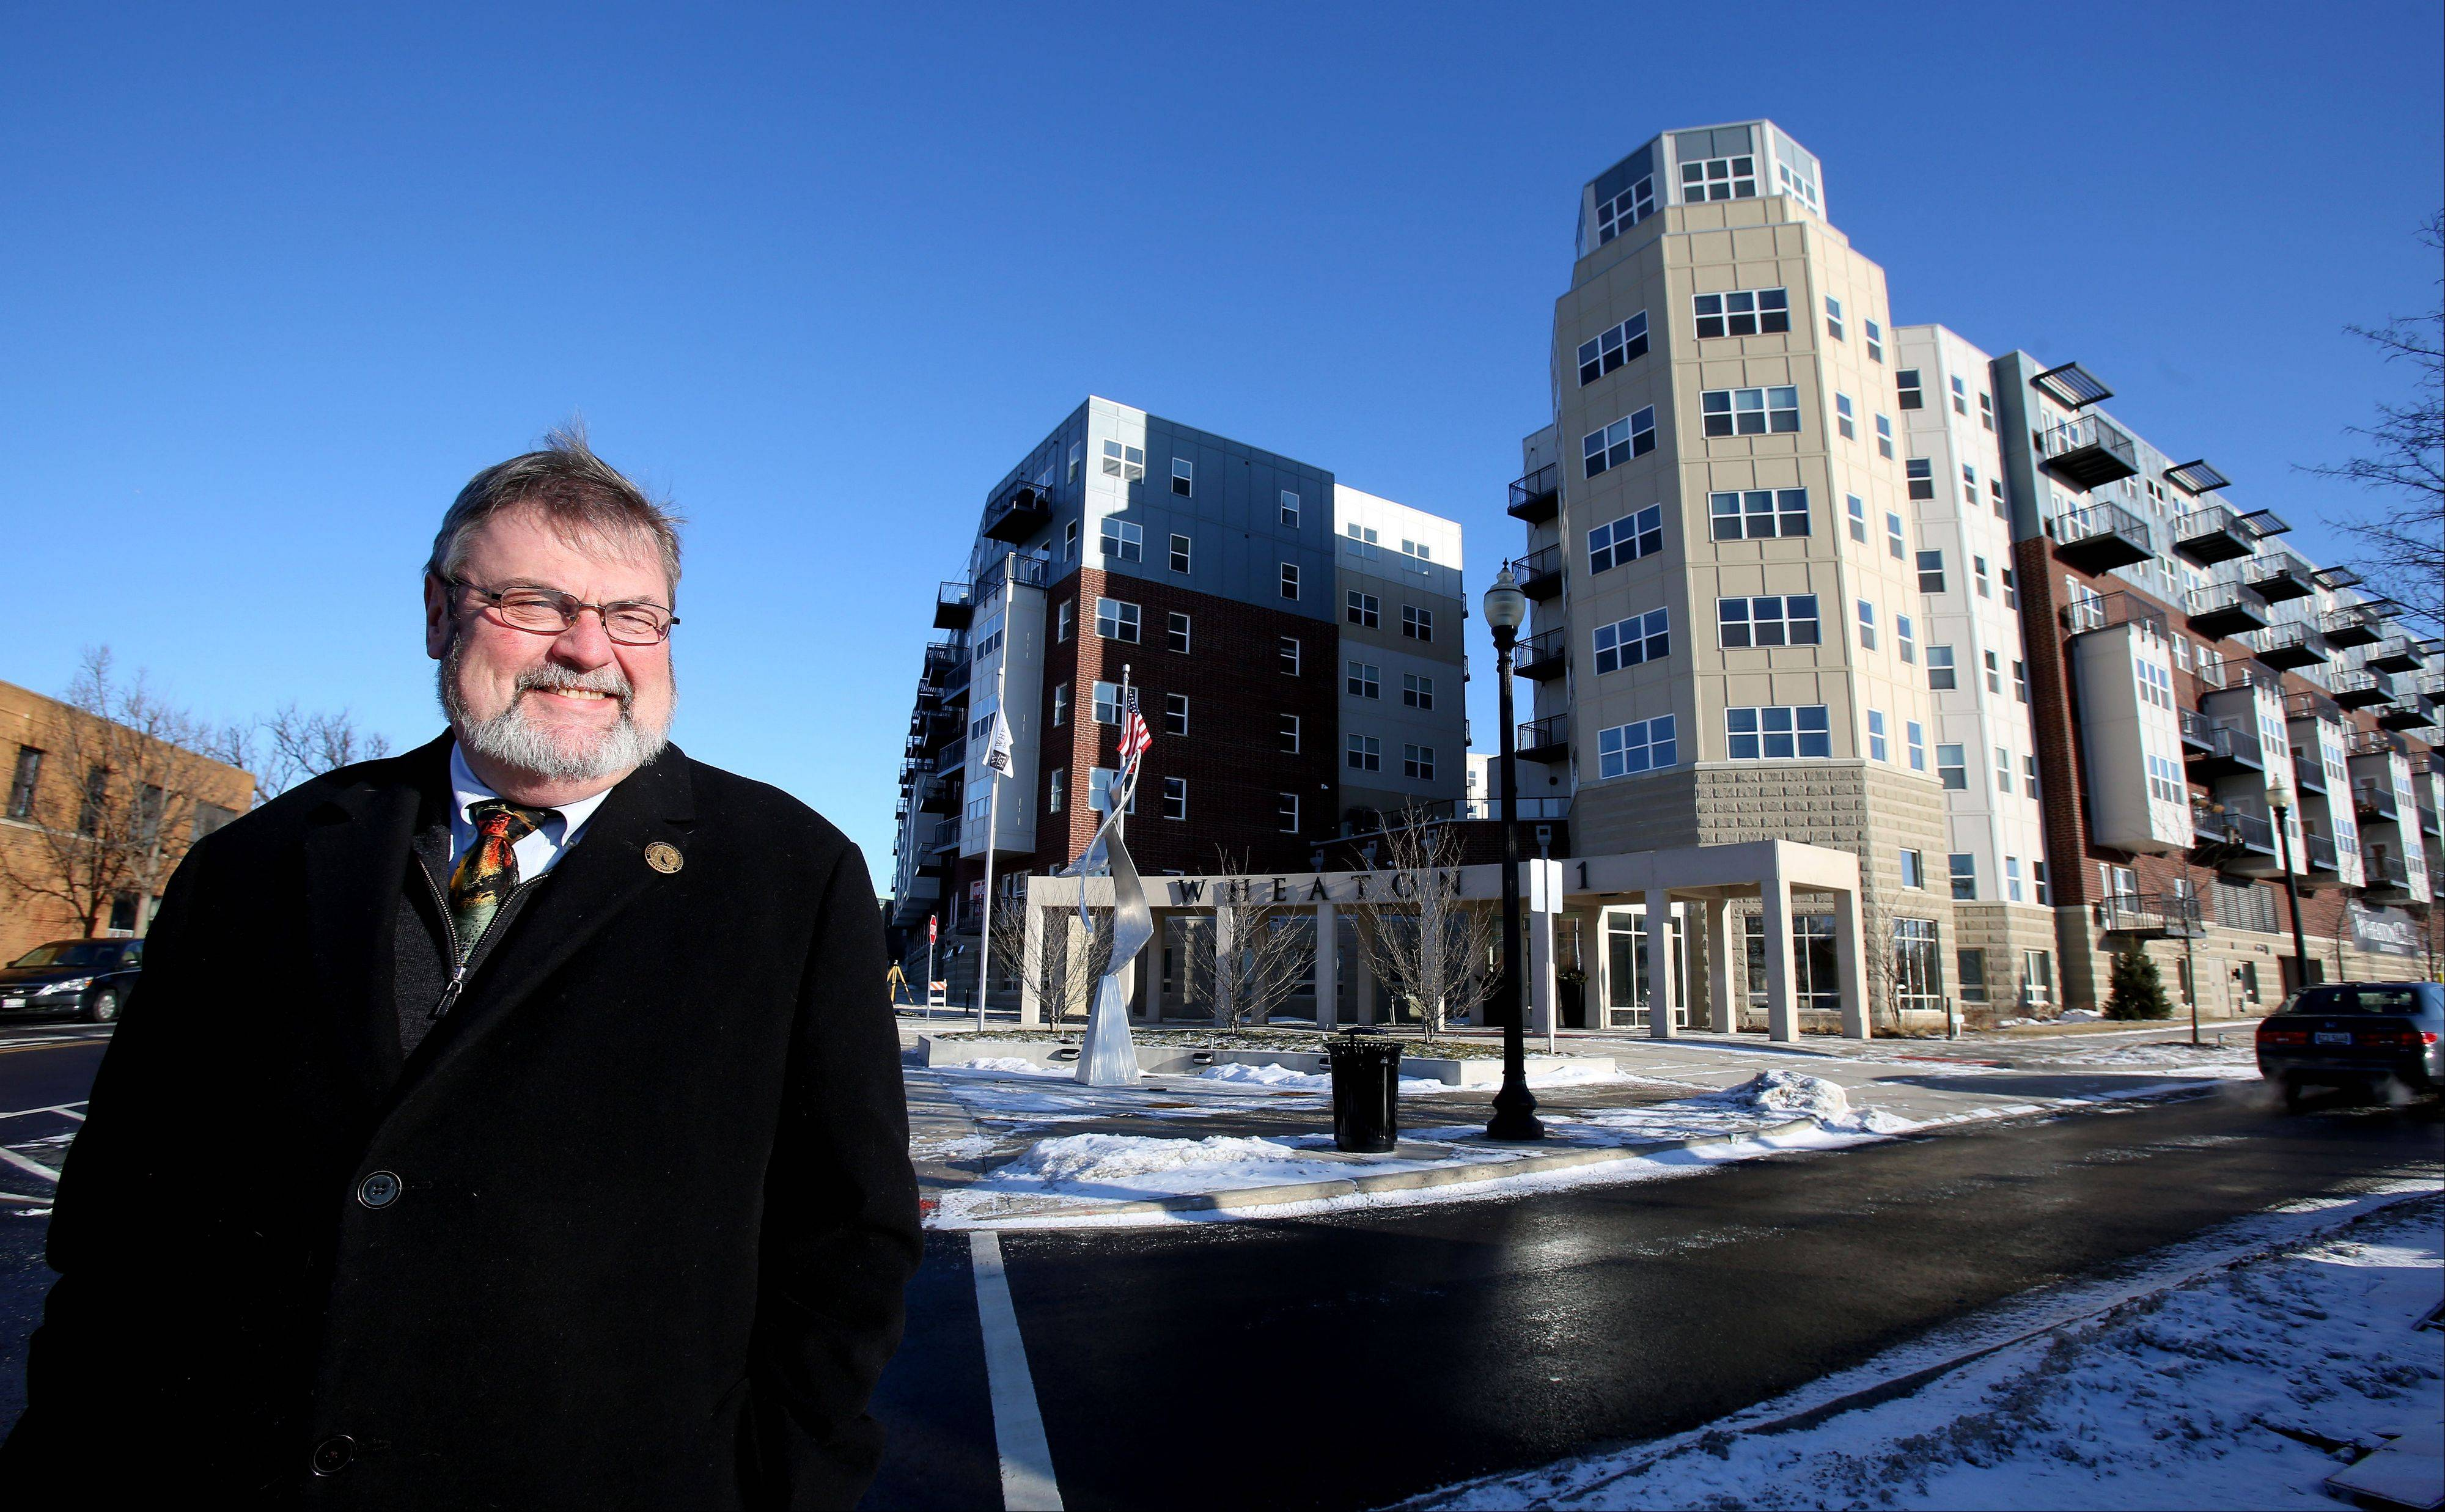 Wheaton Mayor Mike Gresk says the opening of Wheaton 121, a luxury apartment development with 306 units at the corner of Cross and Front streets, was one of the highlights of the past year.